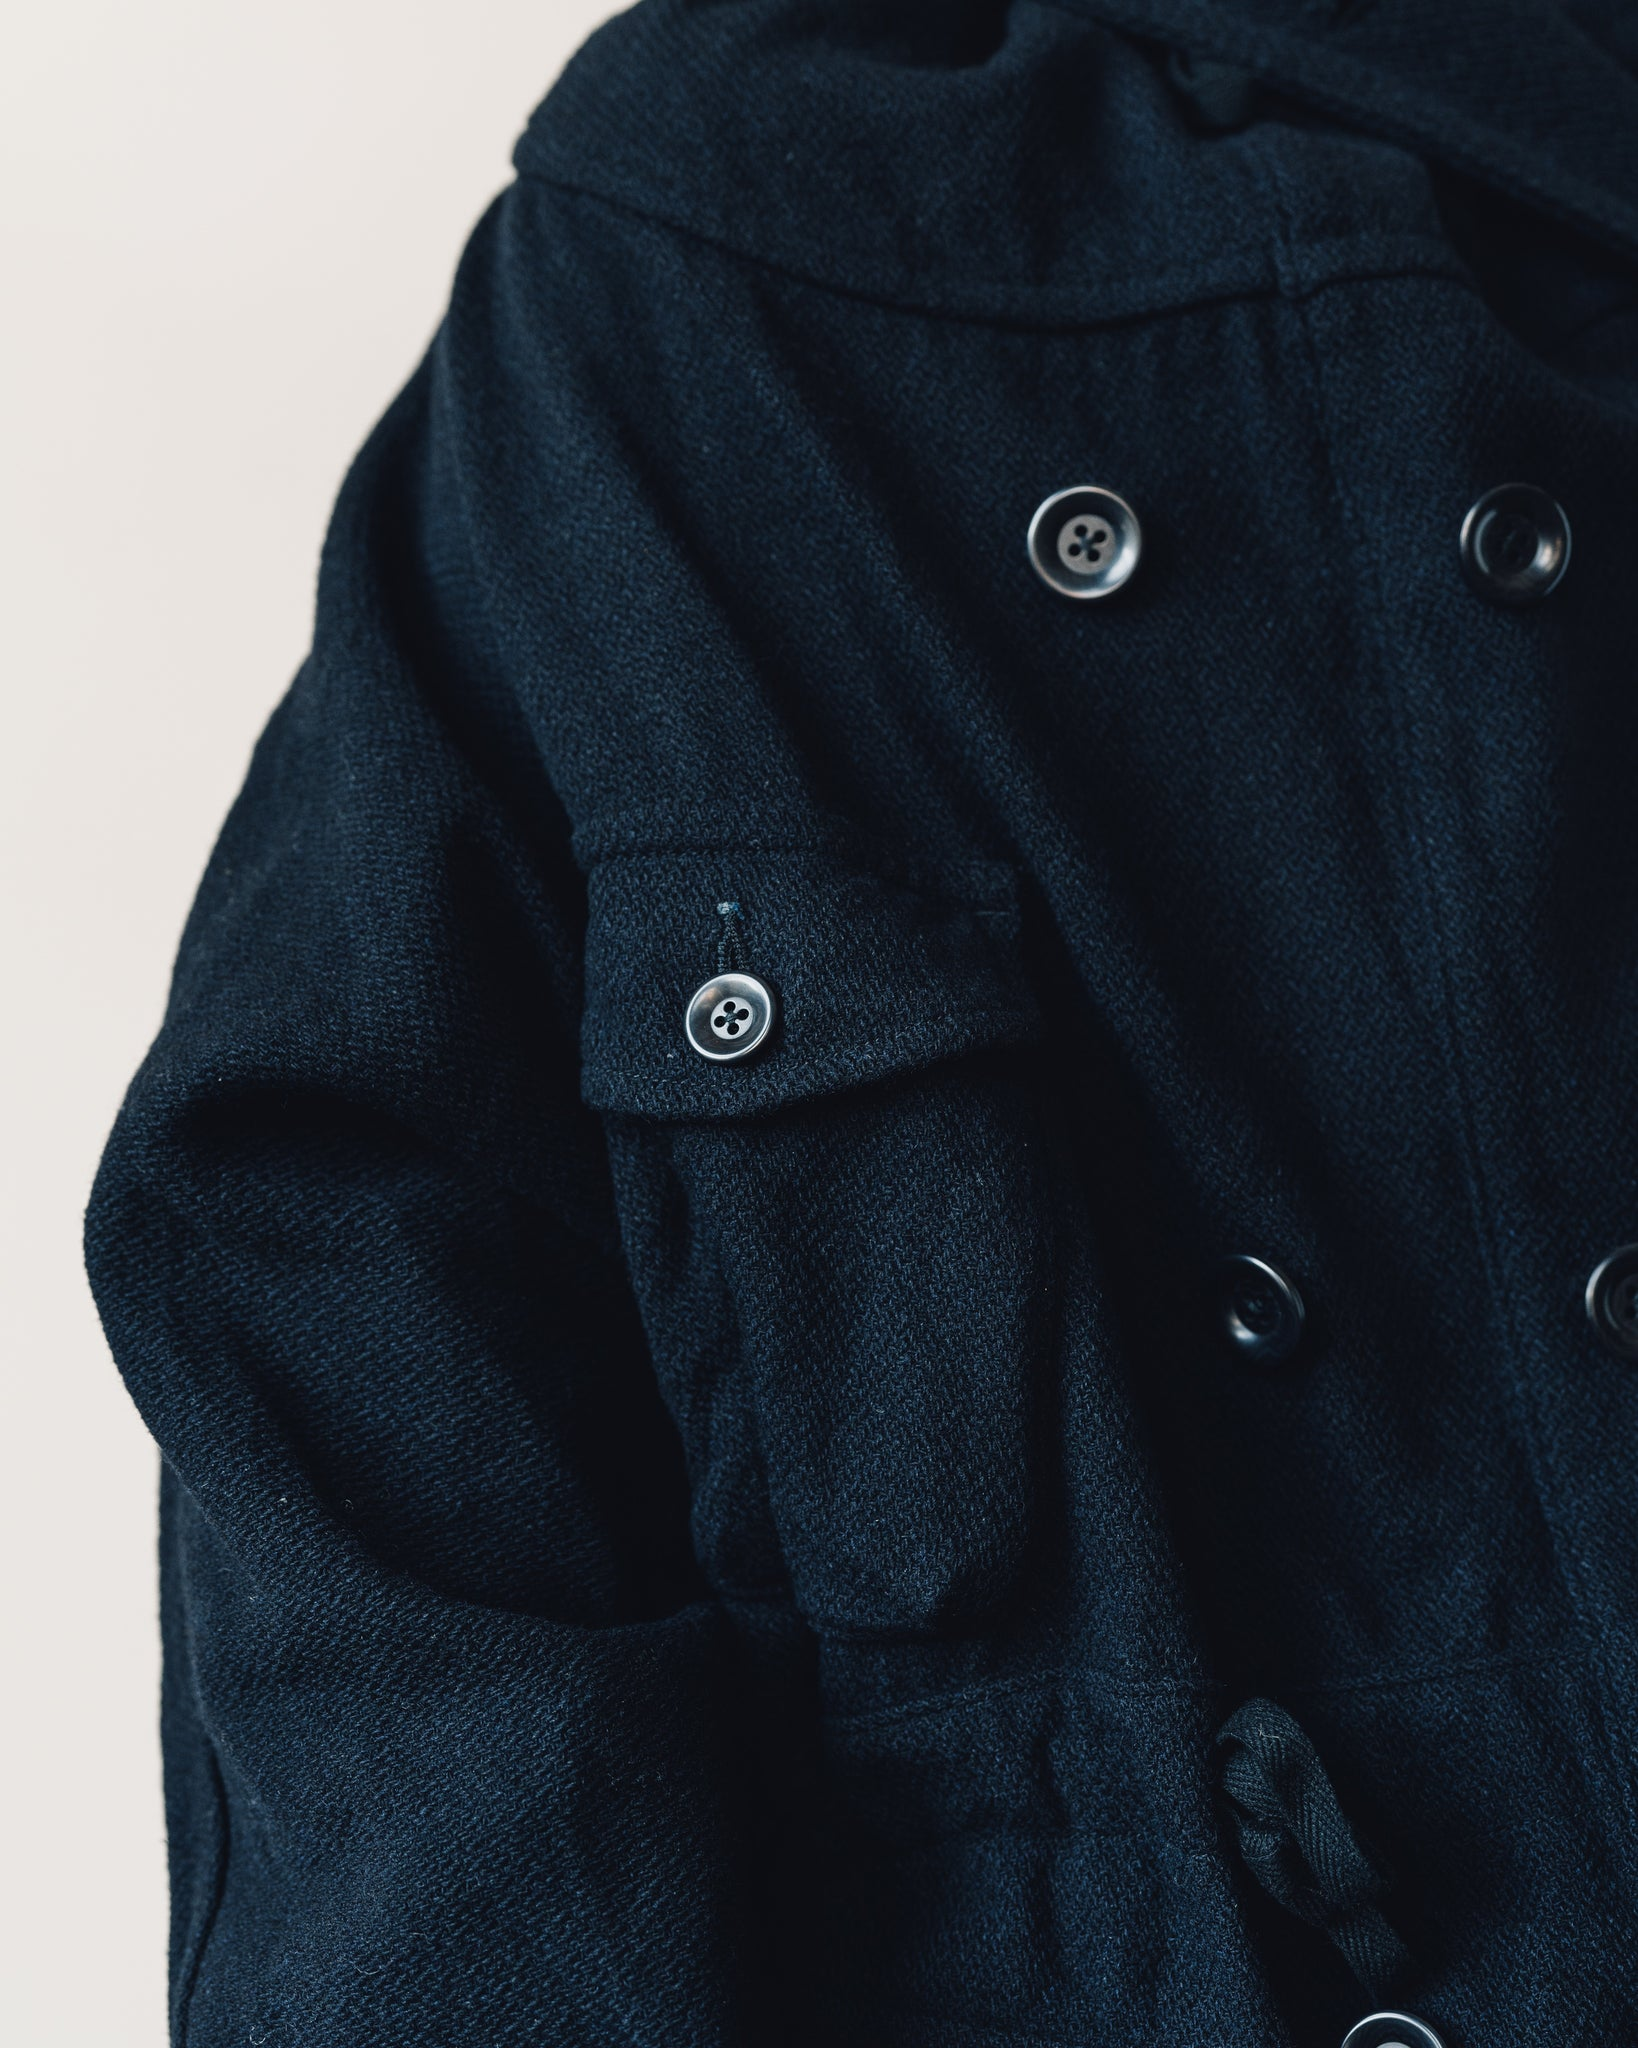 Kapital Vintage Melton Wool Ring Coat, Navy